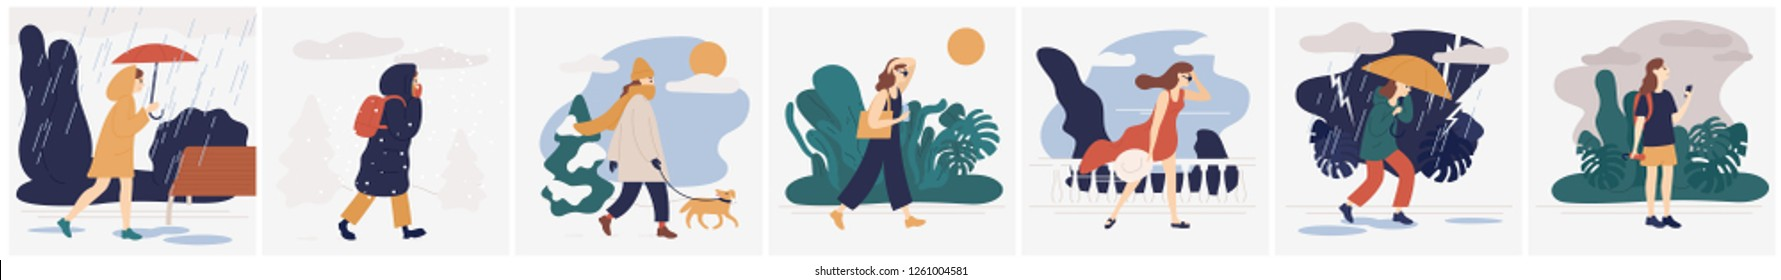 Collection of girl in various weather conditions. Bundle of young woman wearing seasonal clothes and walking on street in rain, snowfall, summer heat. Colorful vector illustration in flat style.